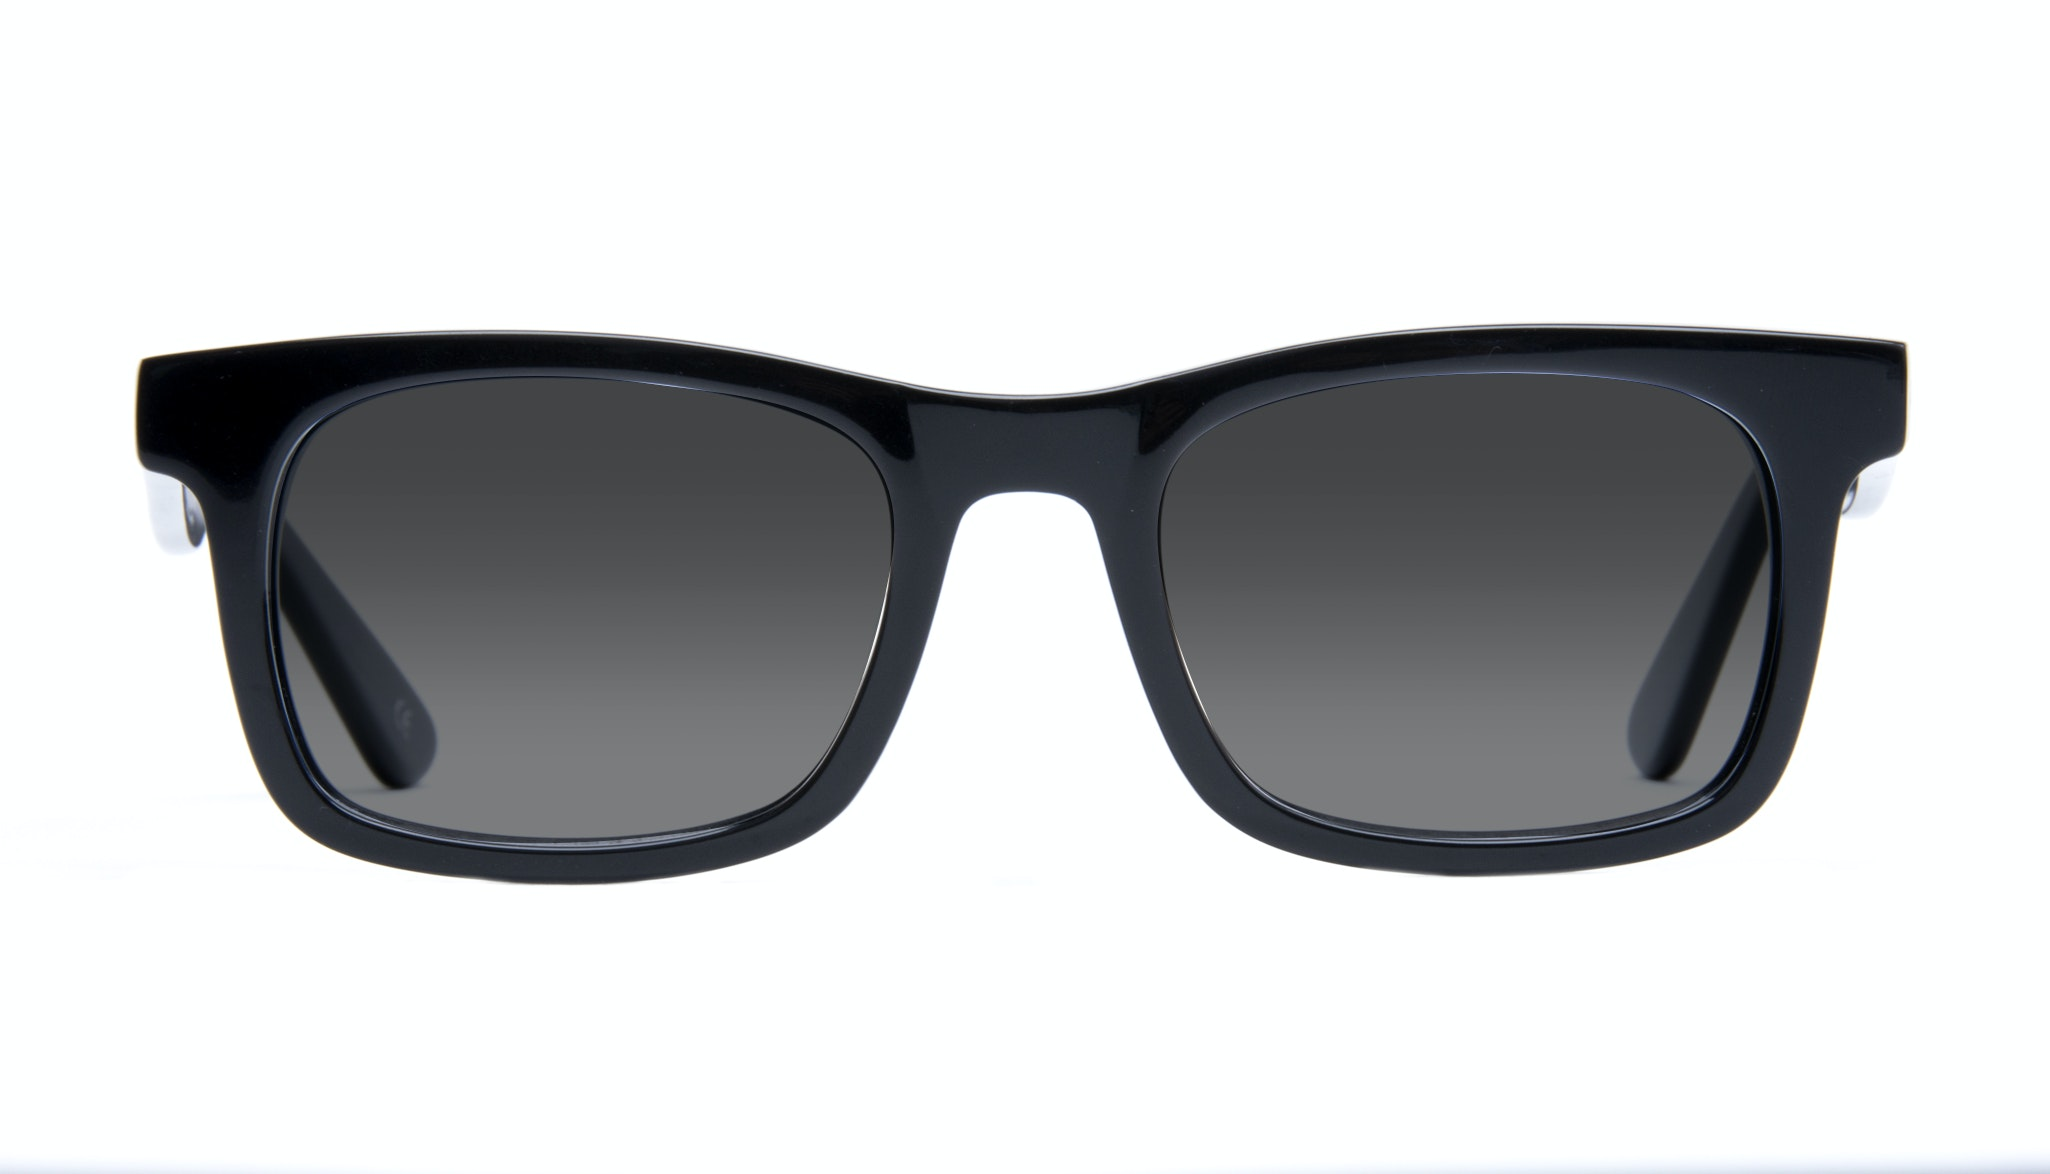 Affordable Fashion Glasses Square Sunglasses Men Women Belgo Black